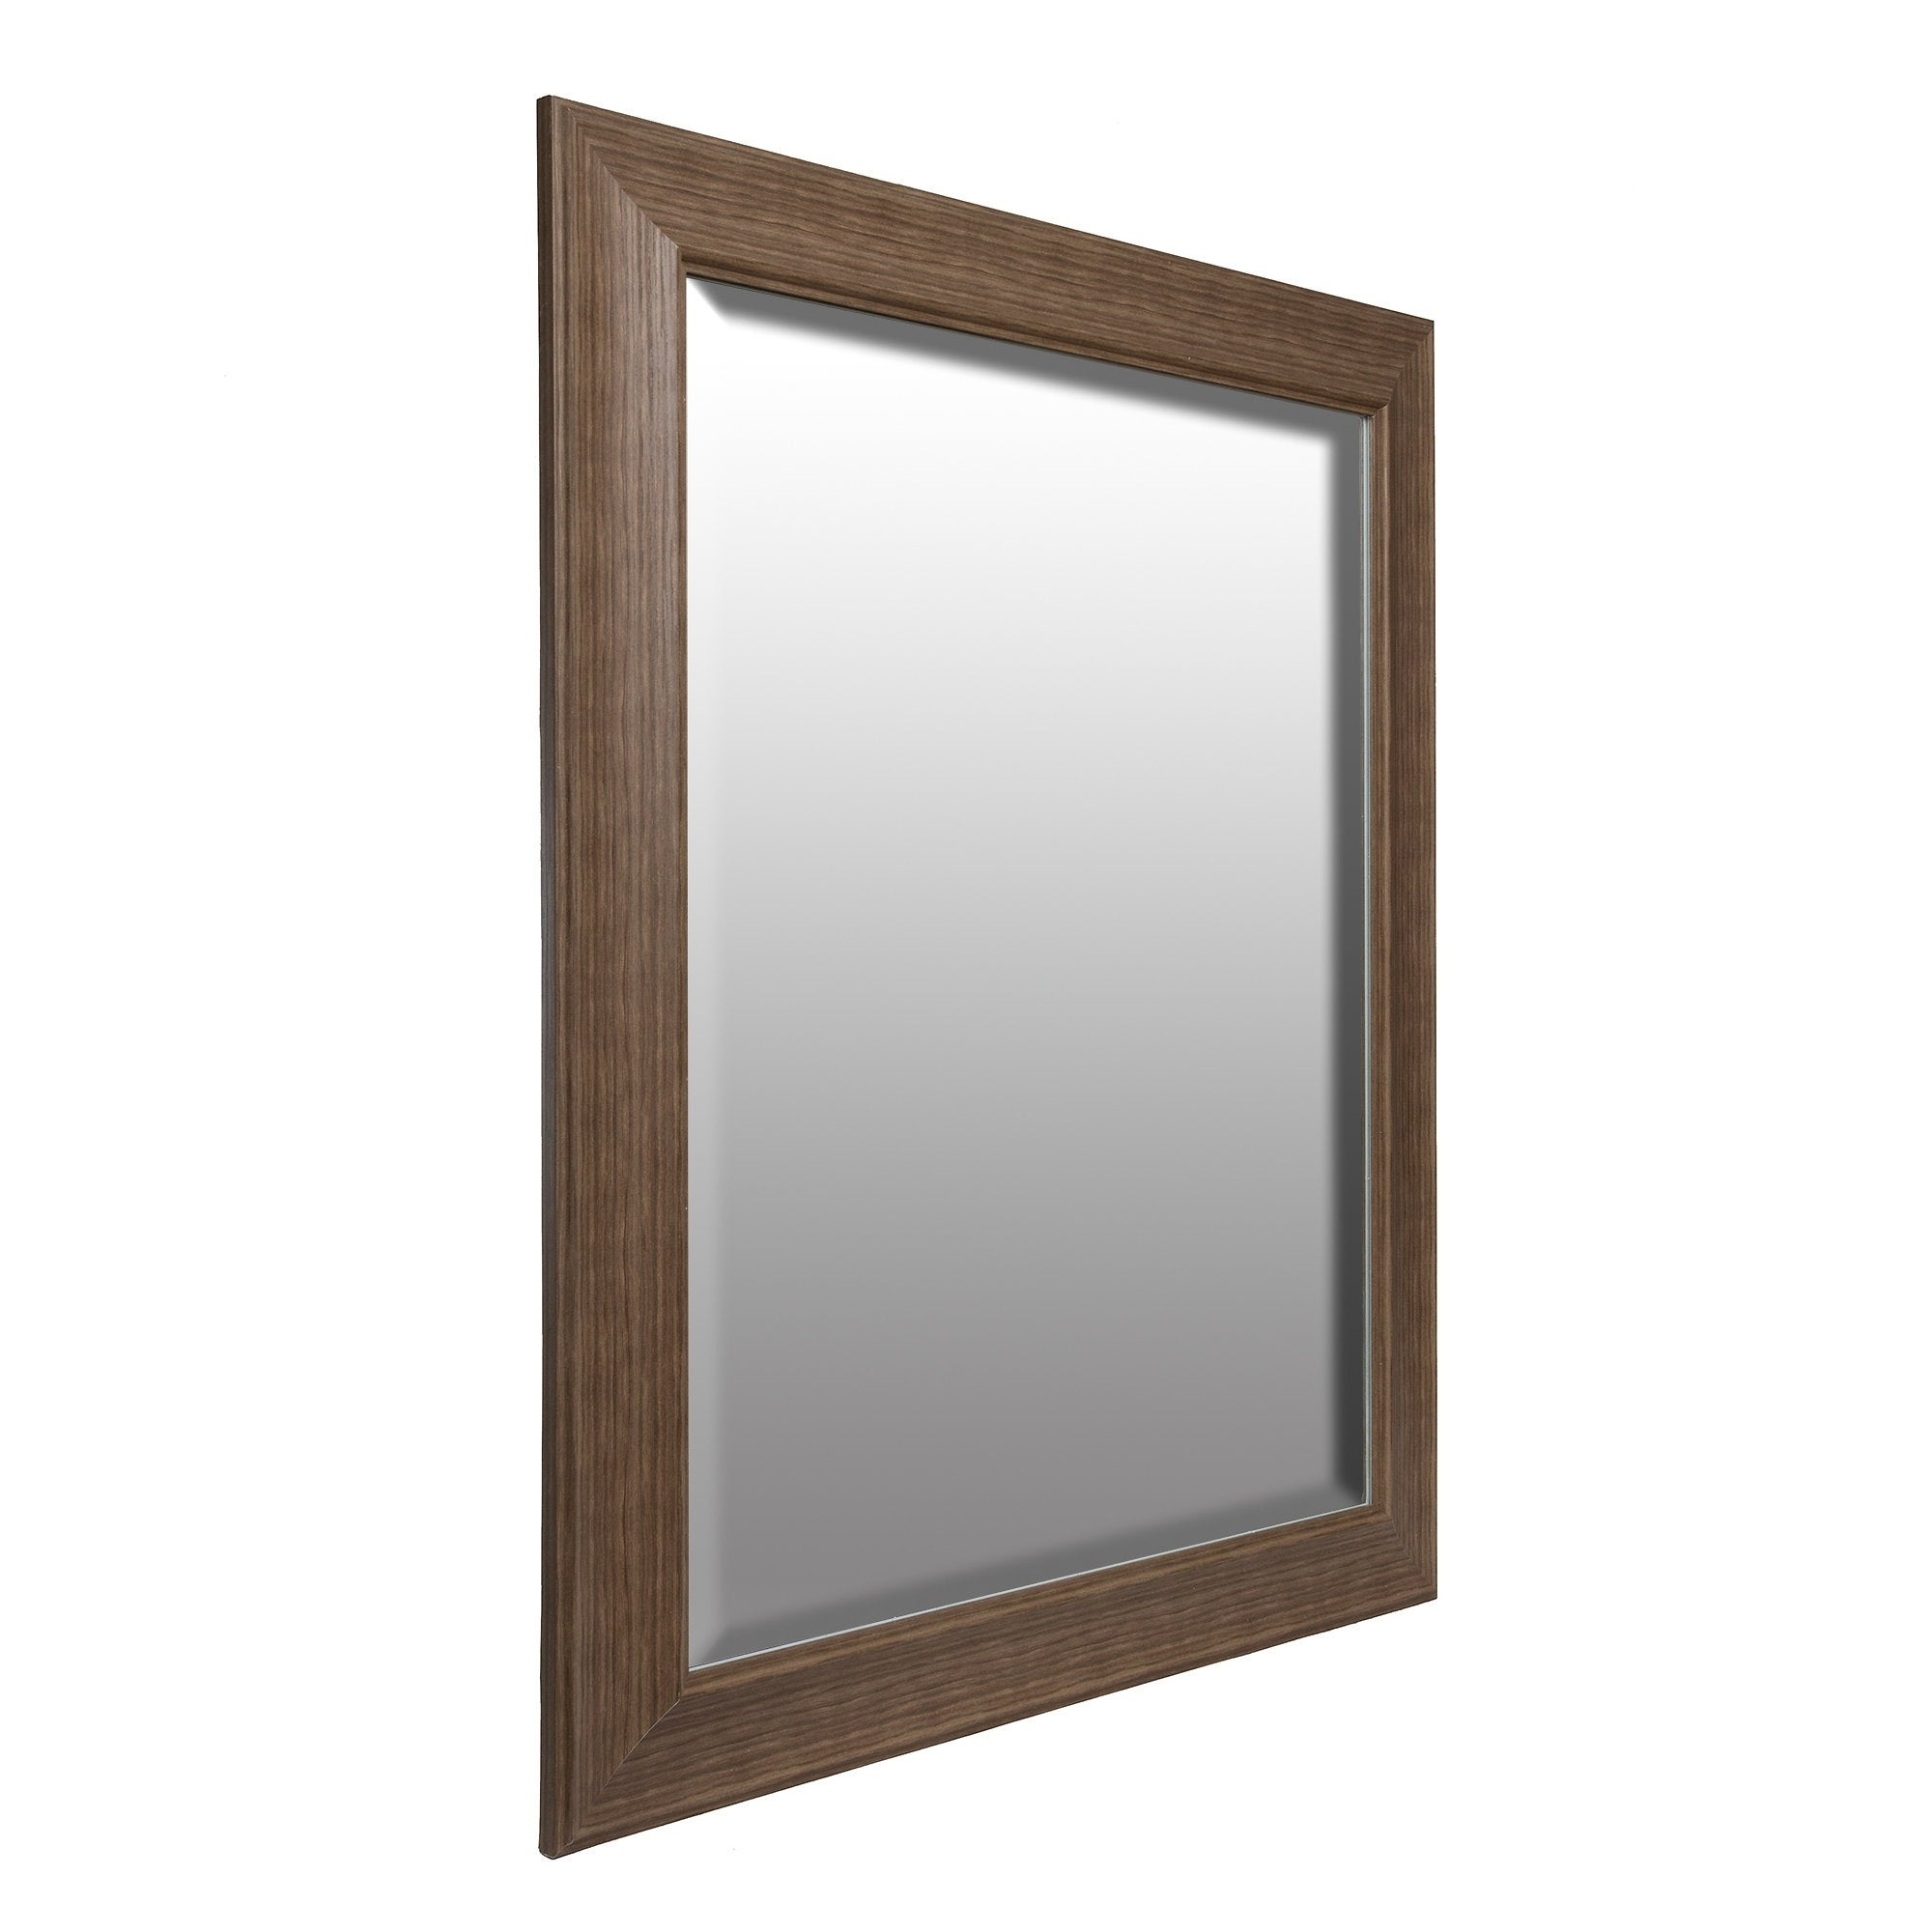 Details About 22X28 Traditional Beveled Wall Mirror Pertaining To Traditional Beveled Wall Mirrors (View 3 of 20)